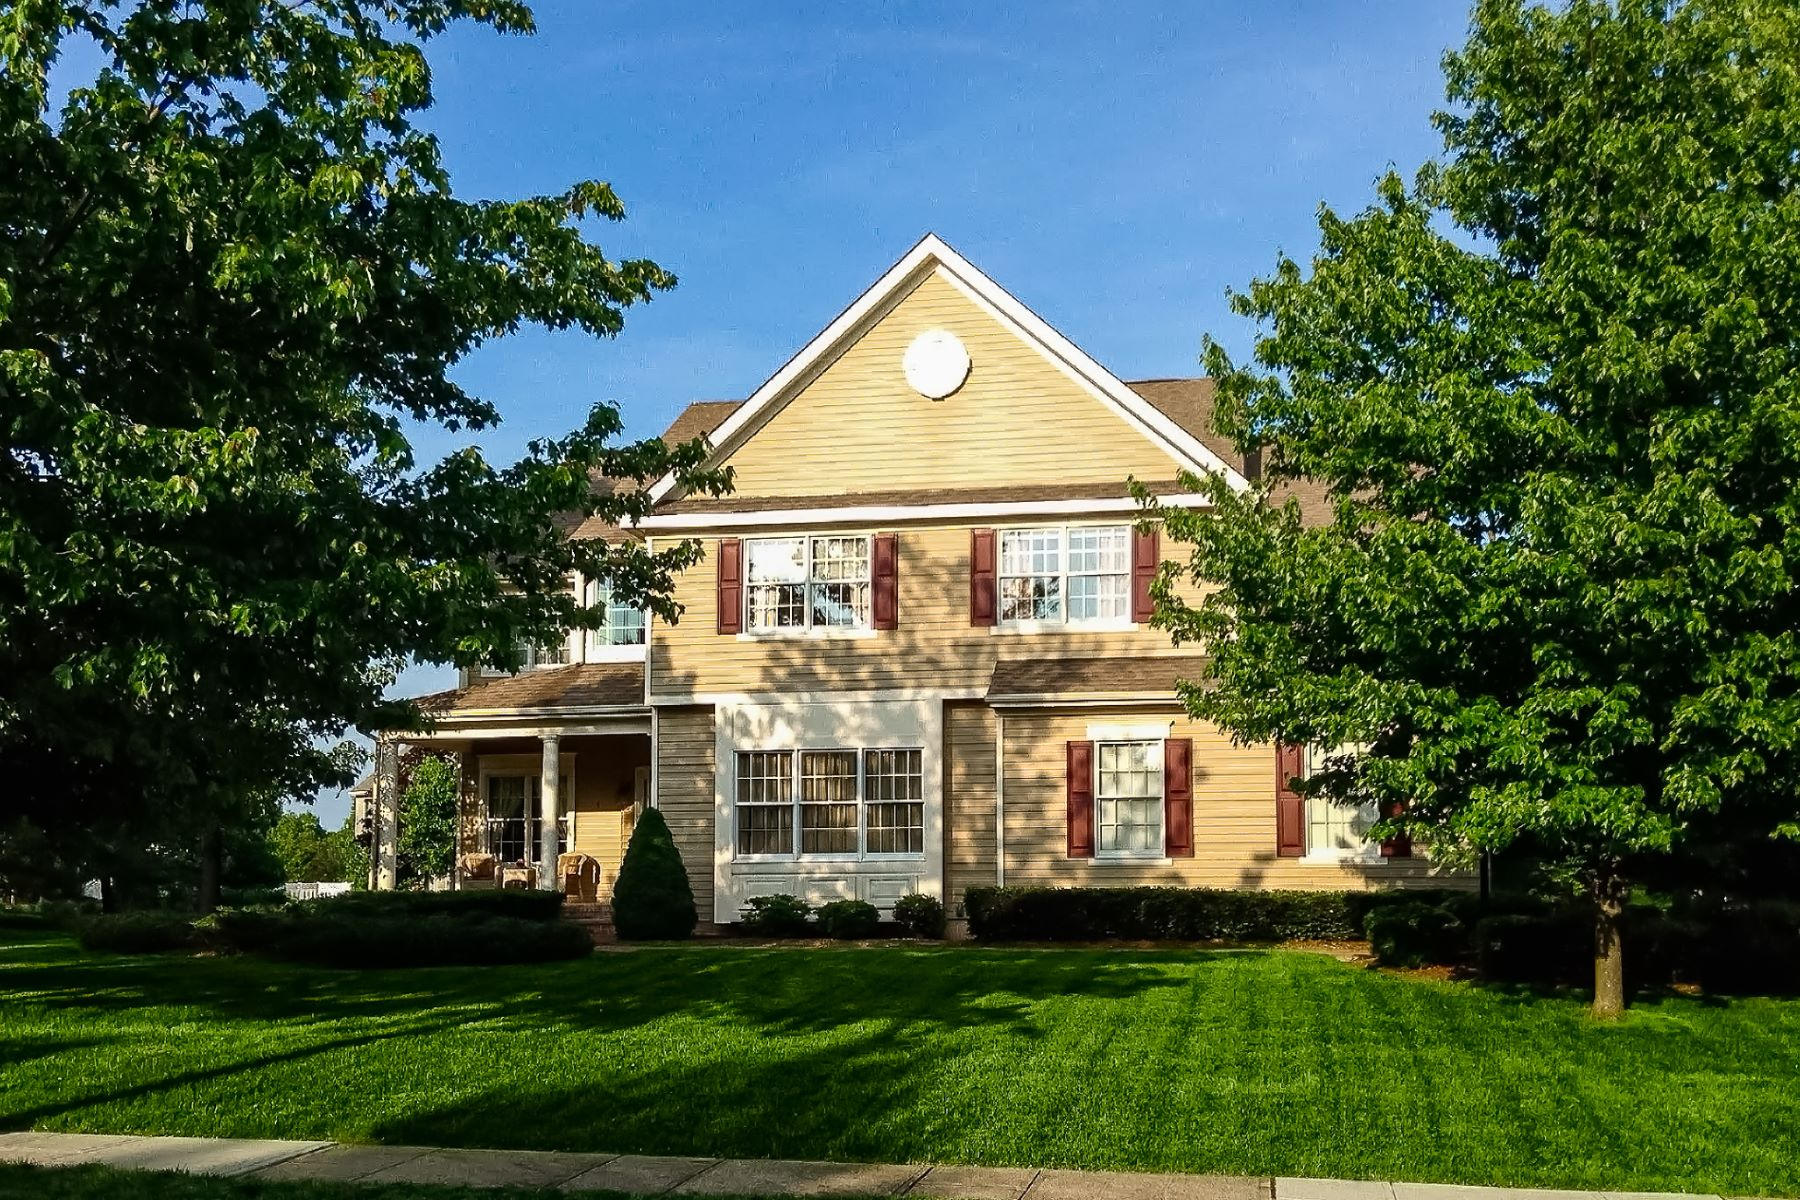 Single Family Homes for Sale at Live Every Single Day in Relaxed Luxury! 3 Arrowhead Court Skillman, New Jersey 08558 United States